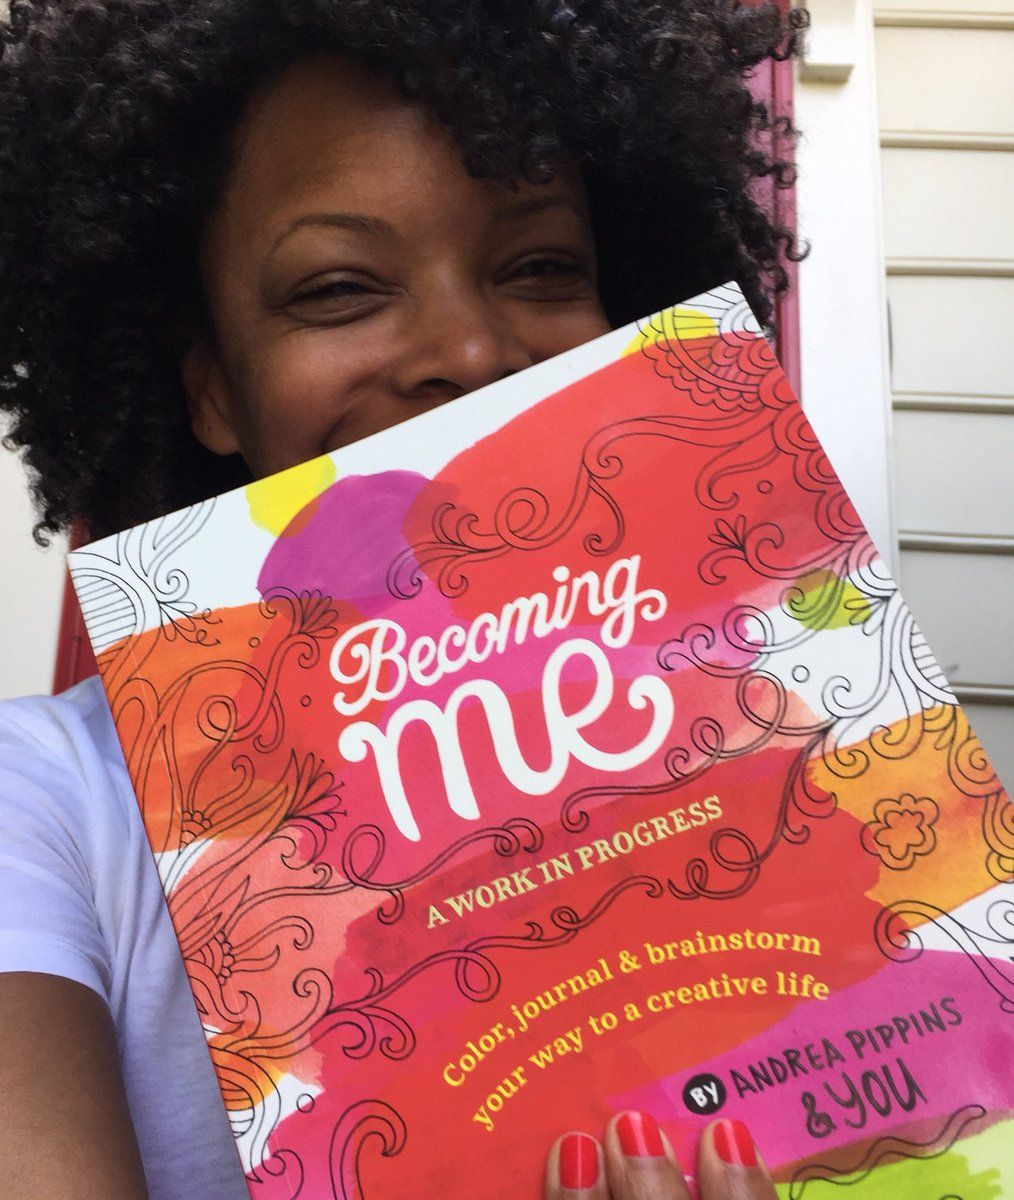 """Andrea Pippins on Twitter: """"IT'S HERE! My 1st copy of Becoming Me,176pages of prompts for exploring creativity. Available for preorder on Amazon https://t.co/iHJDBxWDq1"""""""